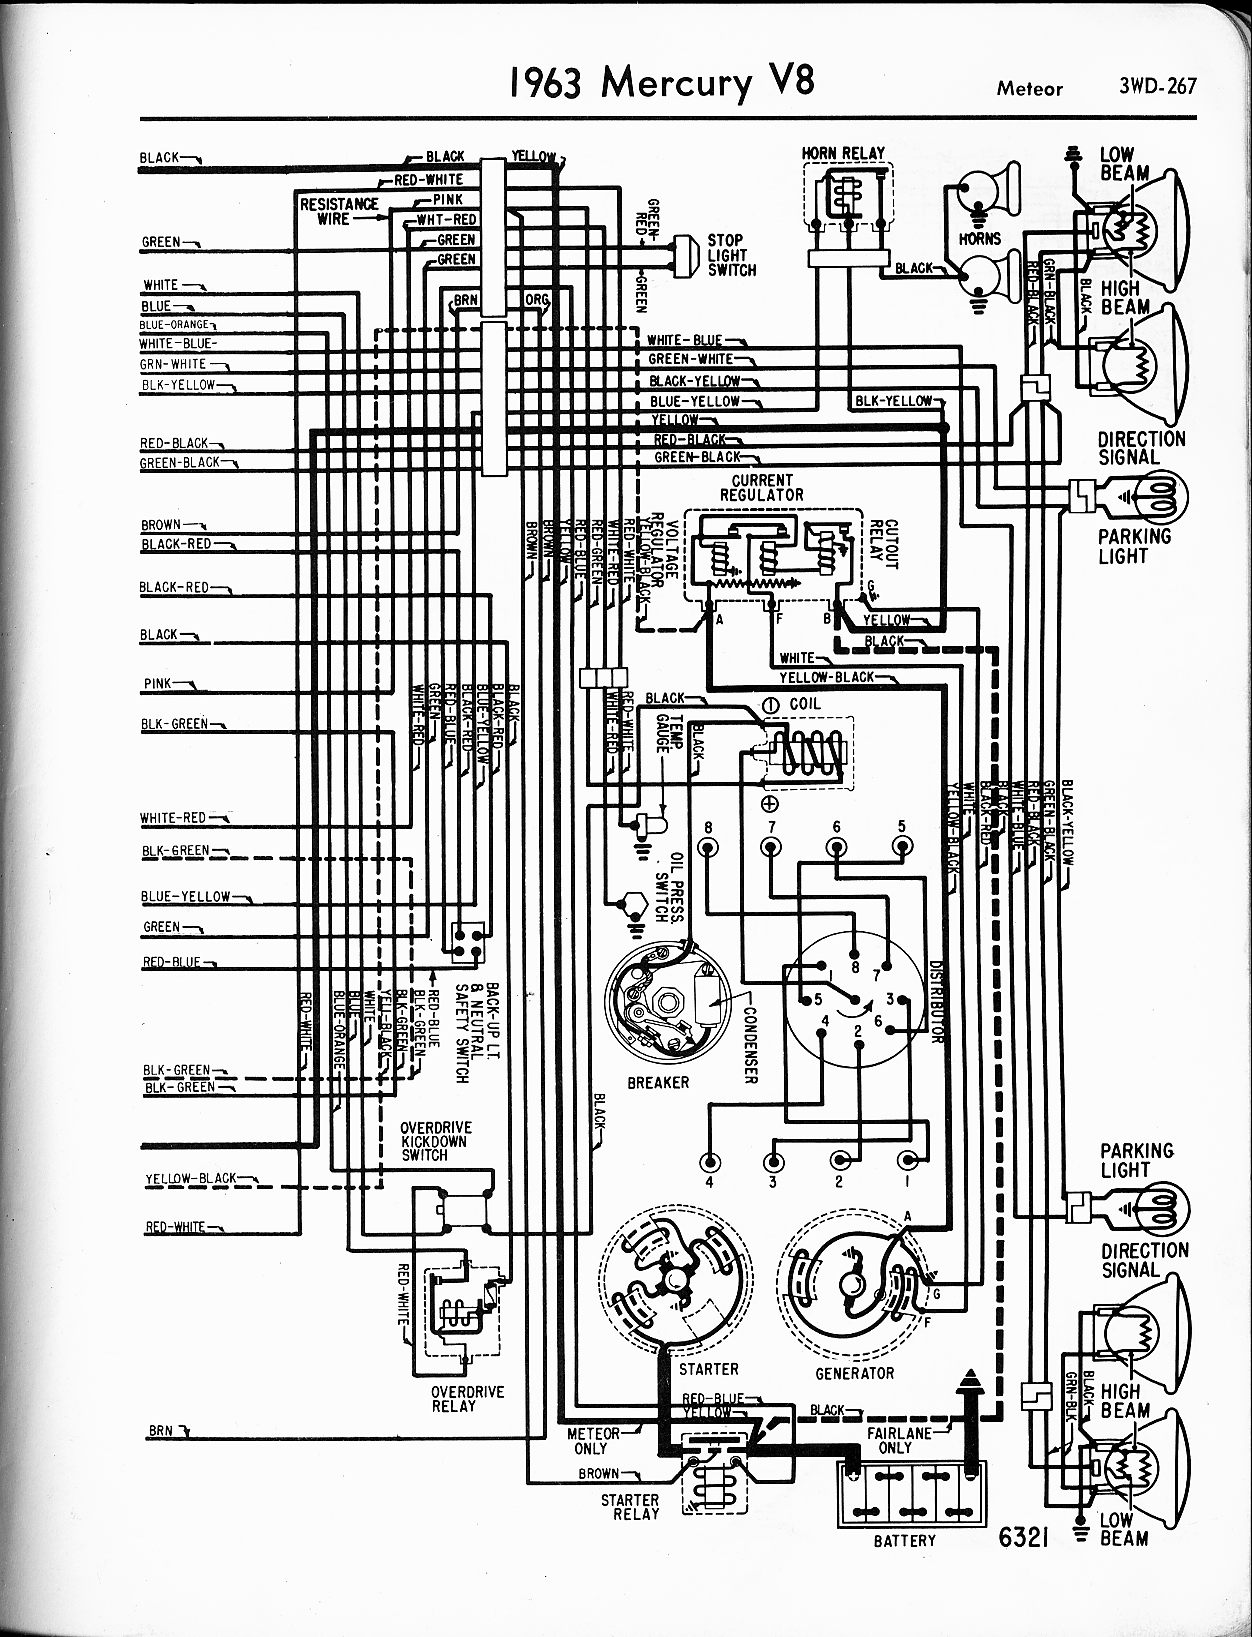 1962 Nova Wiring Diagram Manual Guide 1967 Impala Engine 62 Automotive U2022 Rh Lizcullen Com 1963